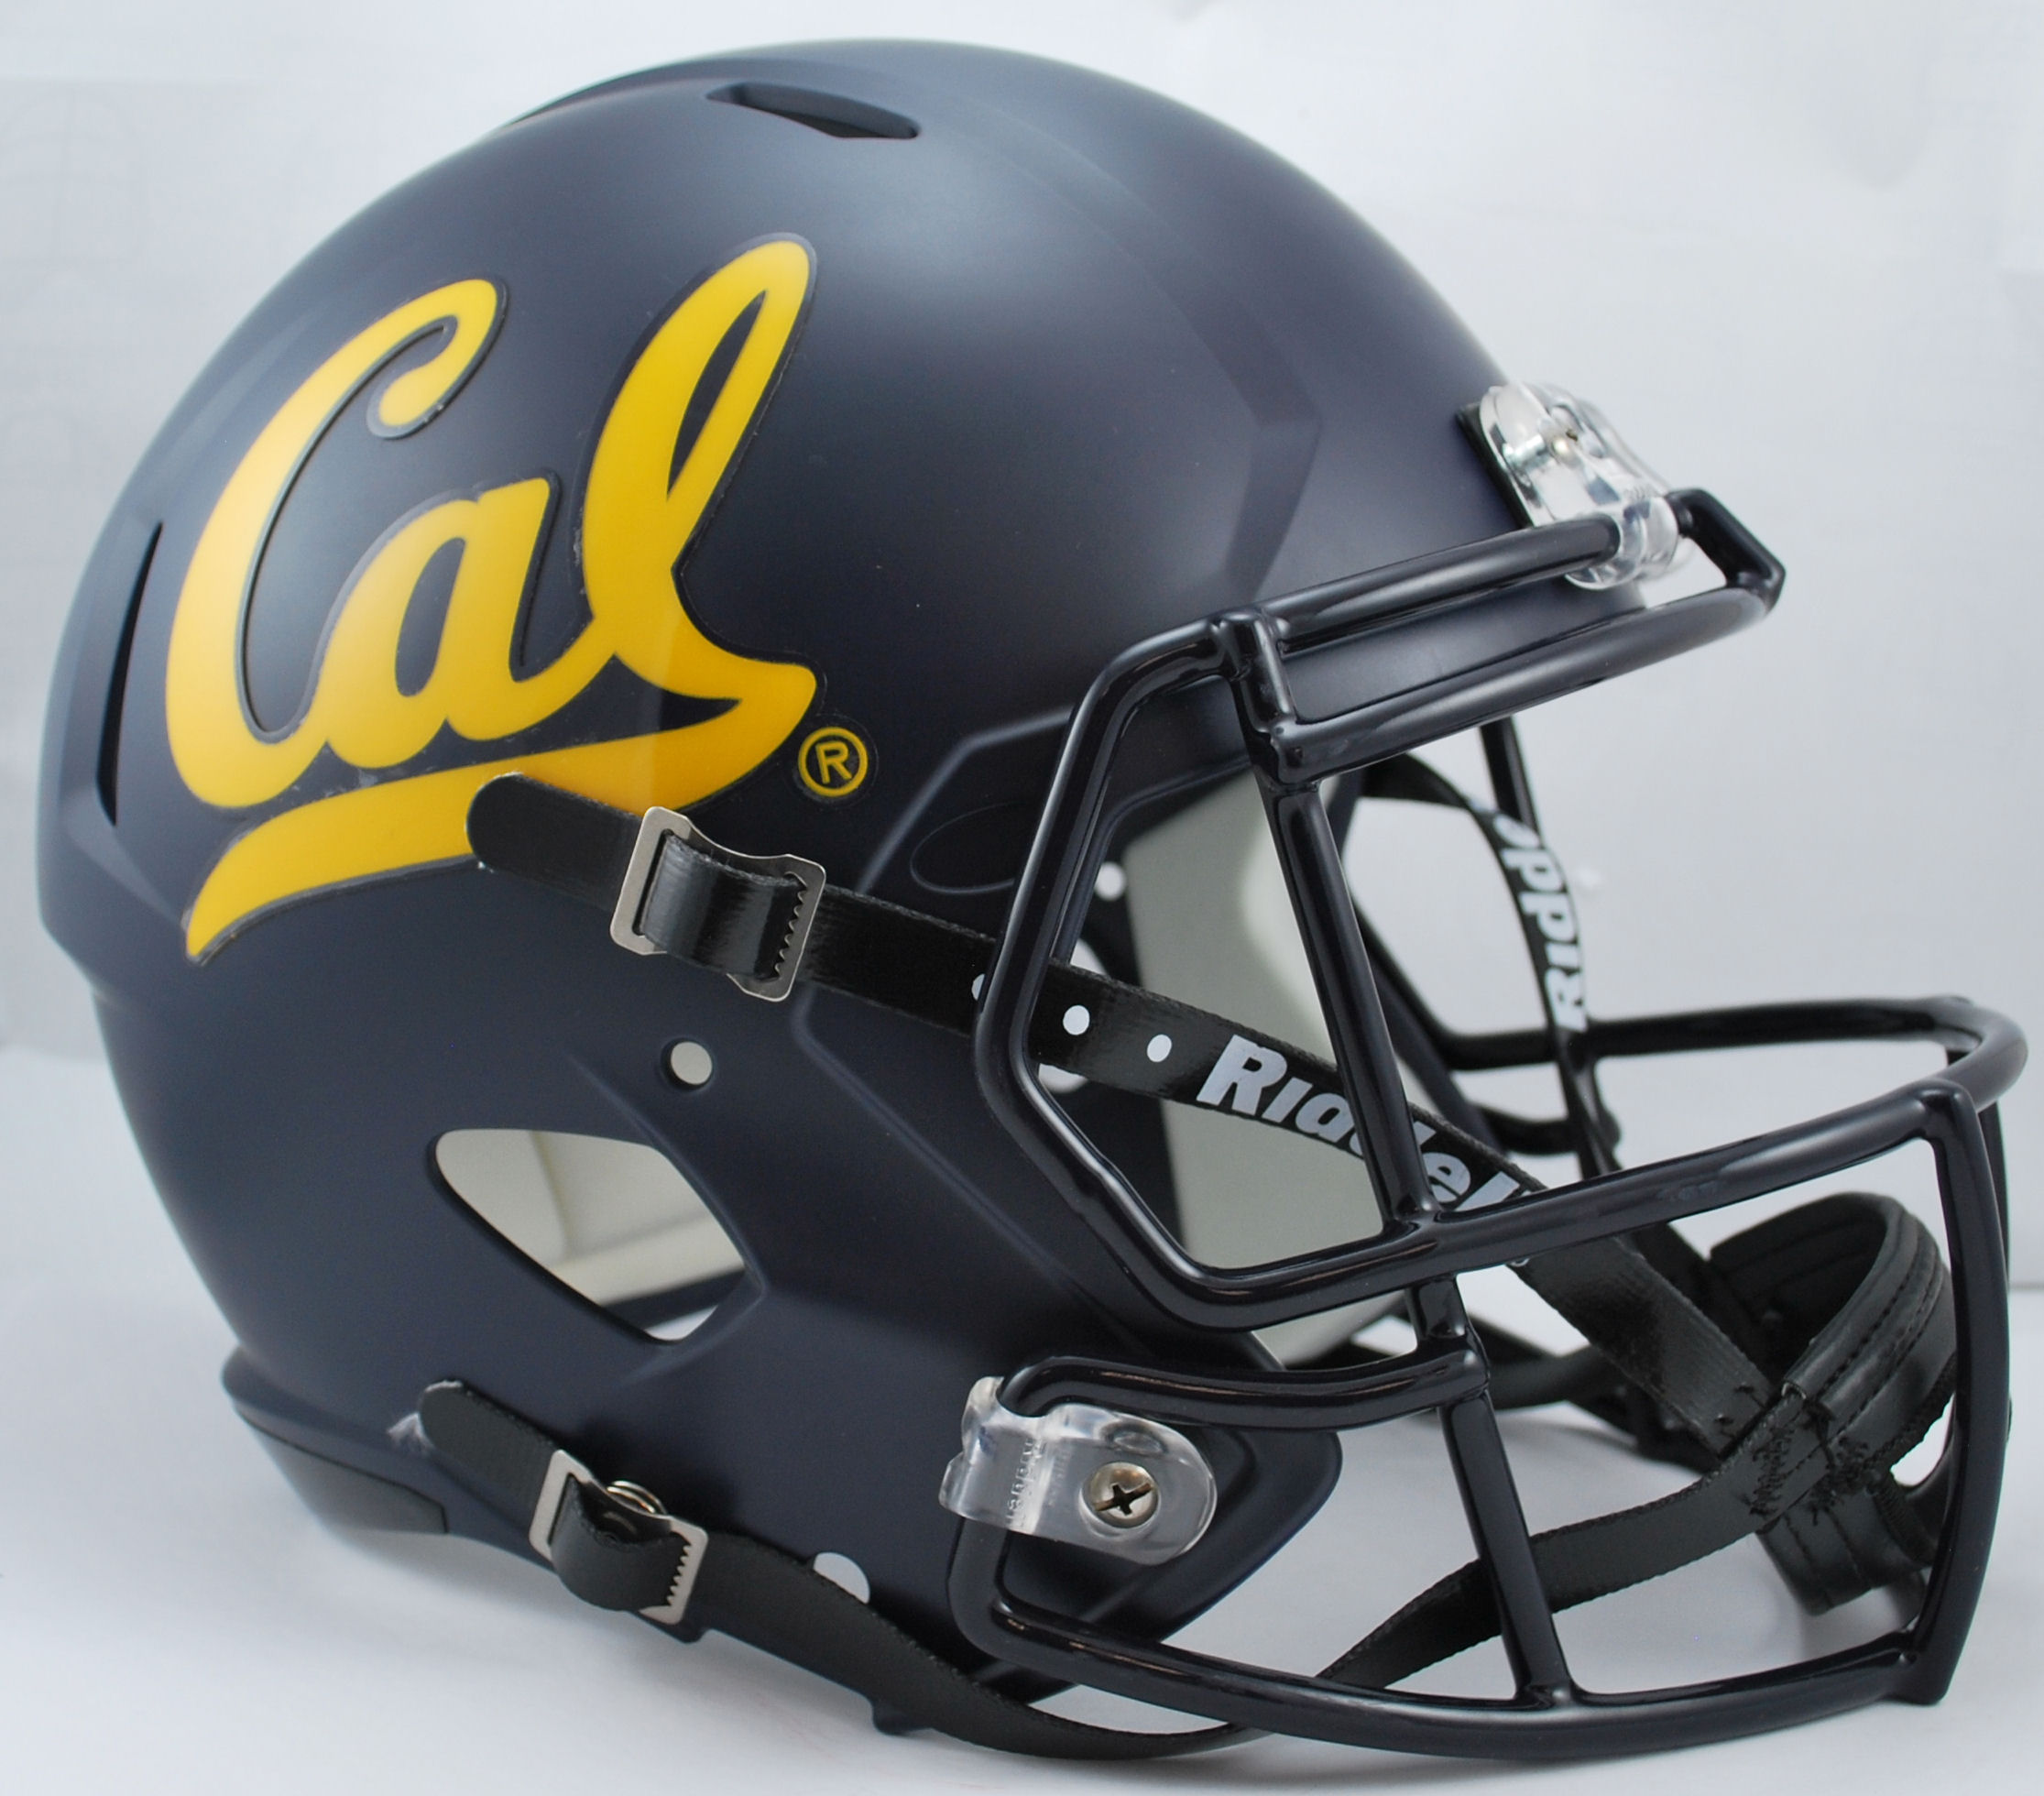 California (CAL) Golden Bears Speed Replica Football Helmet